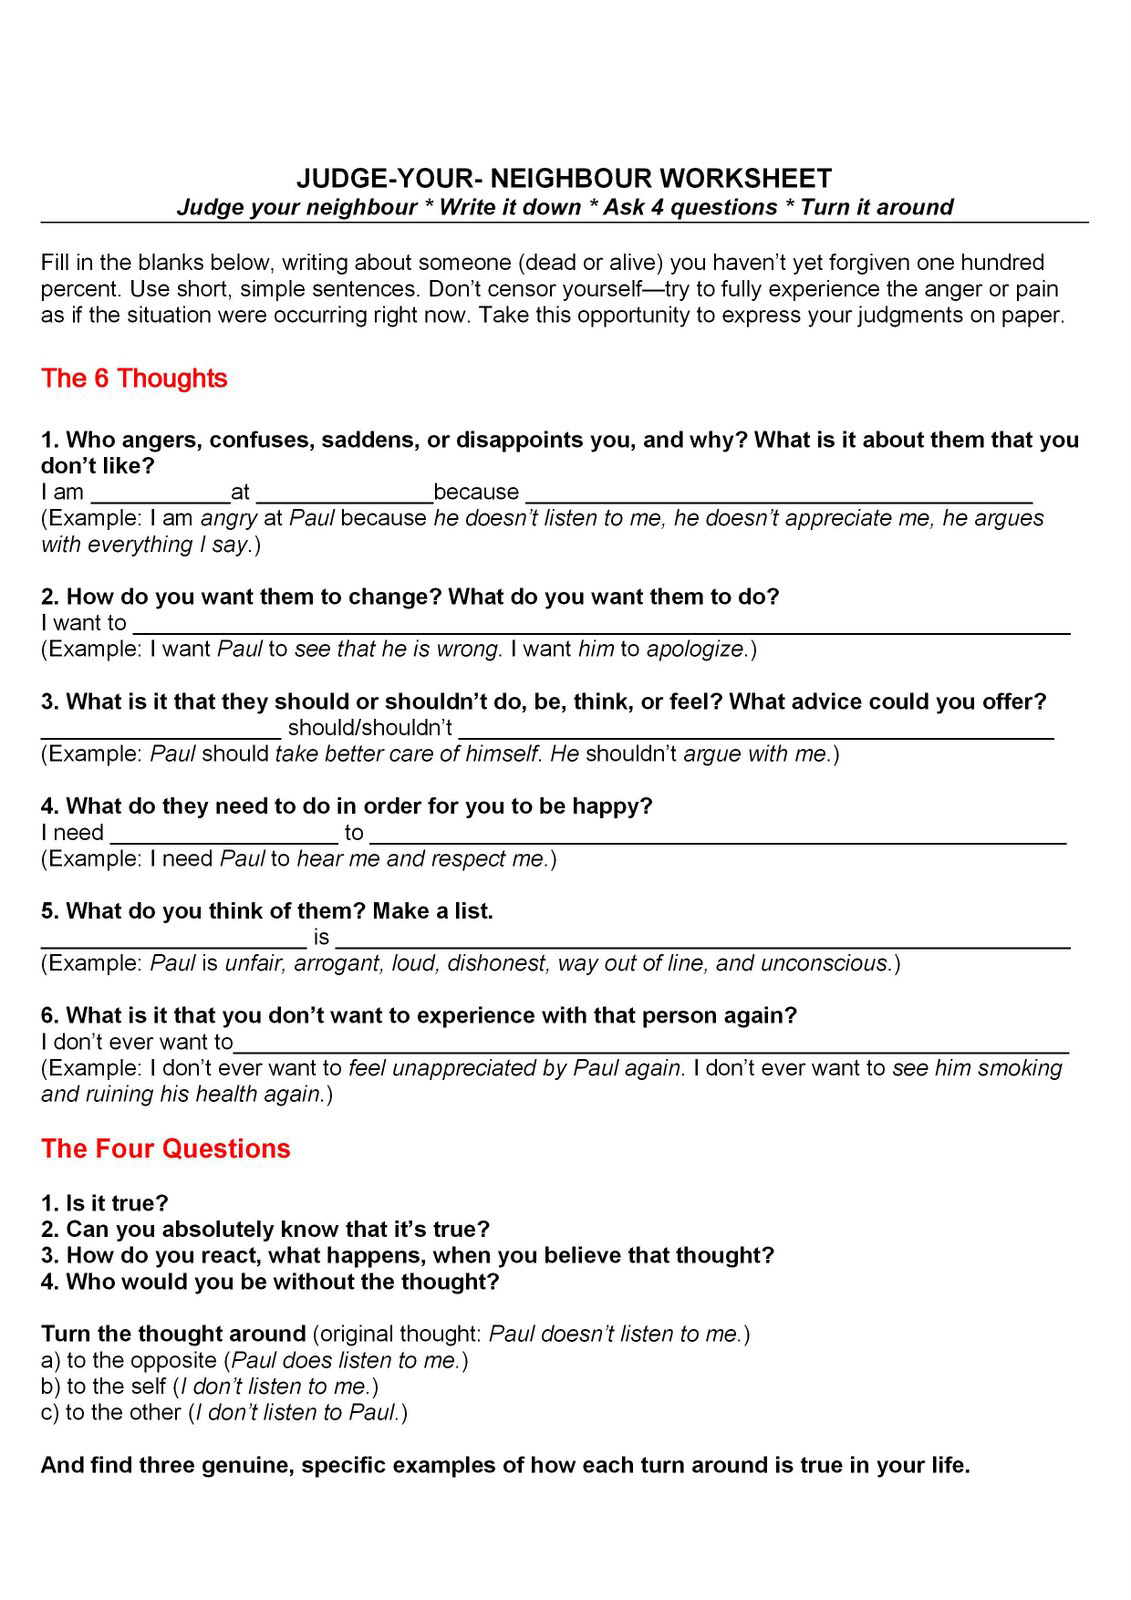 Printables Byron Katie Worksheet july 2014 counseling tidbits page 2 judge your neighbour worksheet